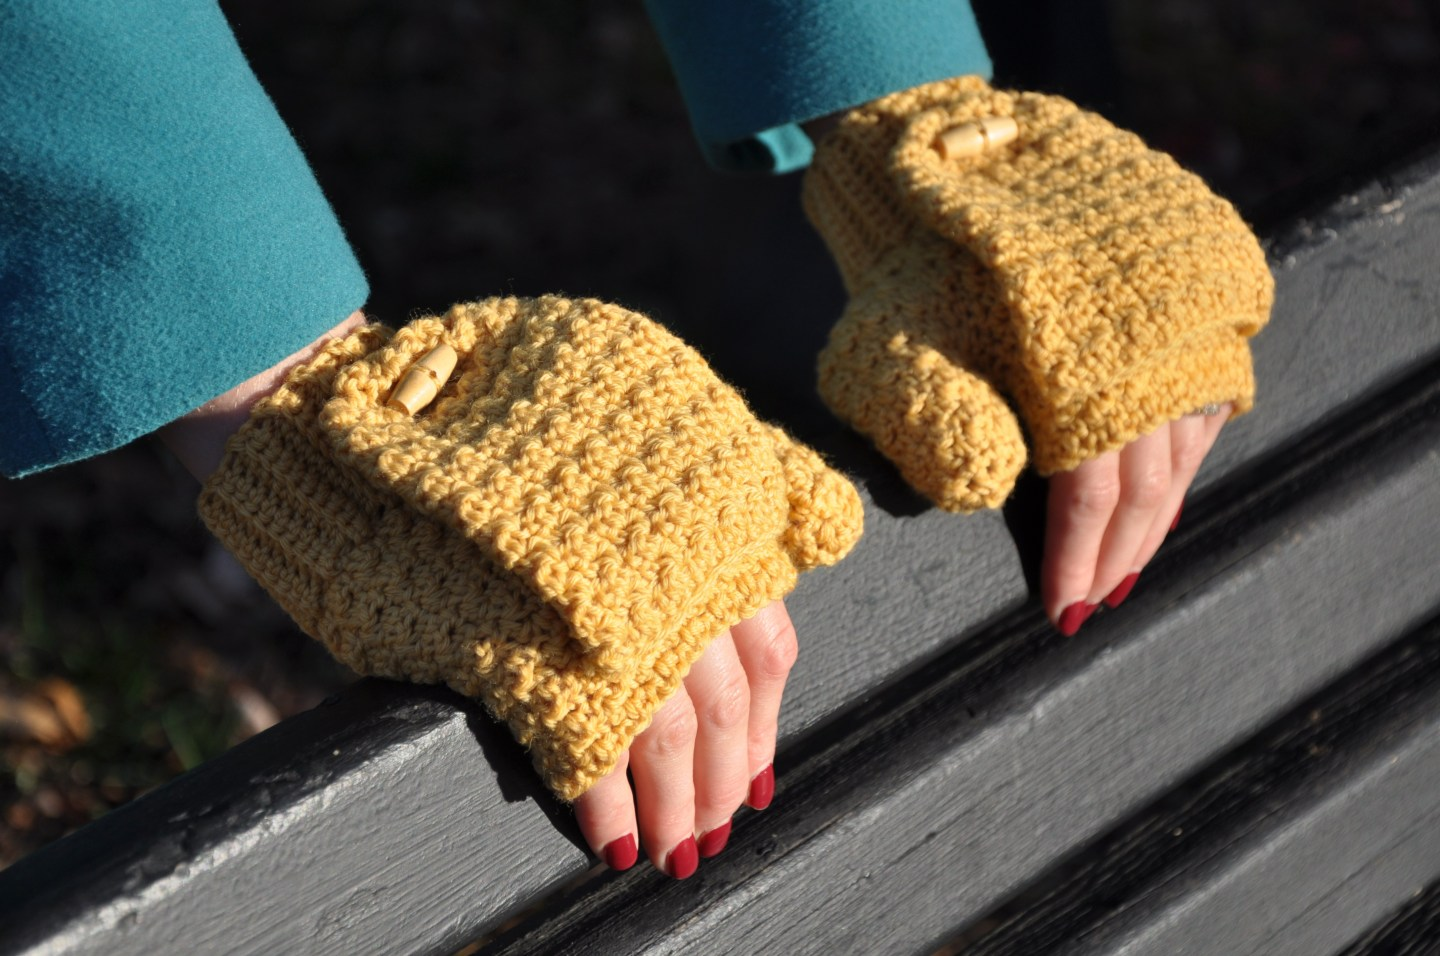 The Mustard Mitts - This list of 20 easy fingerless gloves crochet patterns is suitable for everyone, including males, females, adults, and children. #FingerlessGlovesCrochetPatterns #CrochetFingerlessGloves #CrochetPatterns